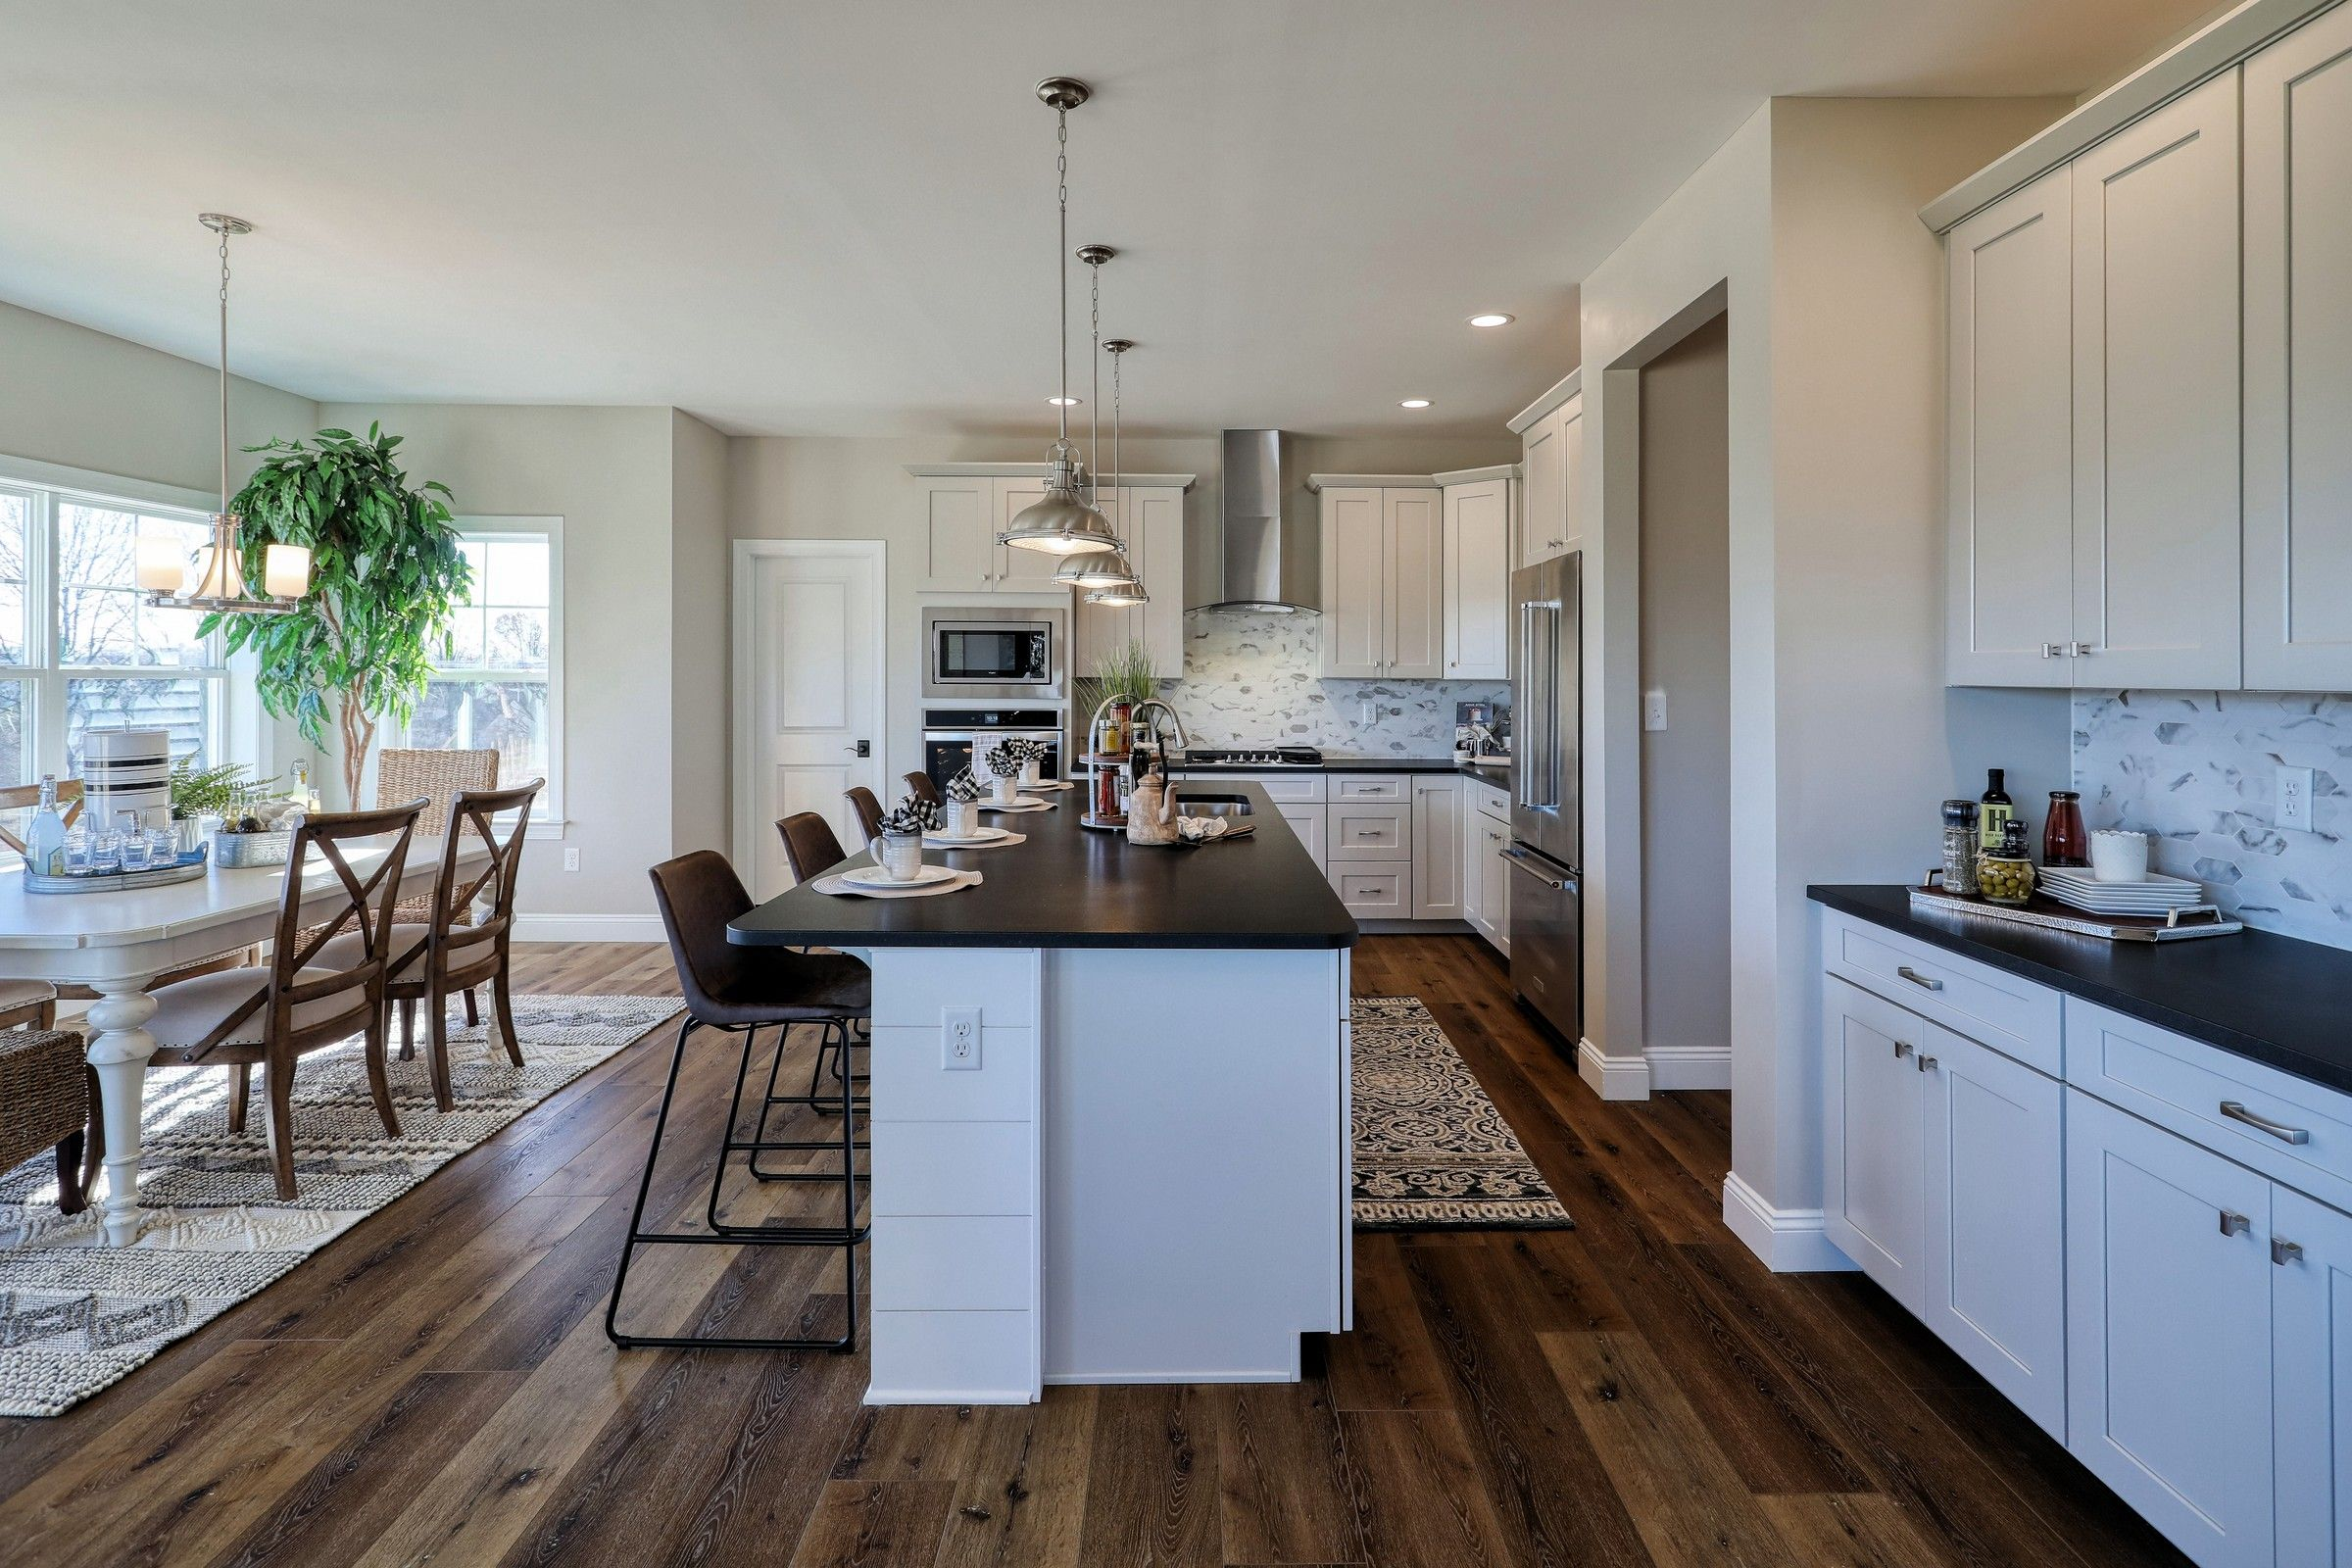 Kitchen featured in the Ethan Manor By Keystone Custom Homes in Baltimore, MD